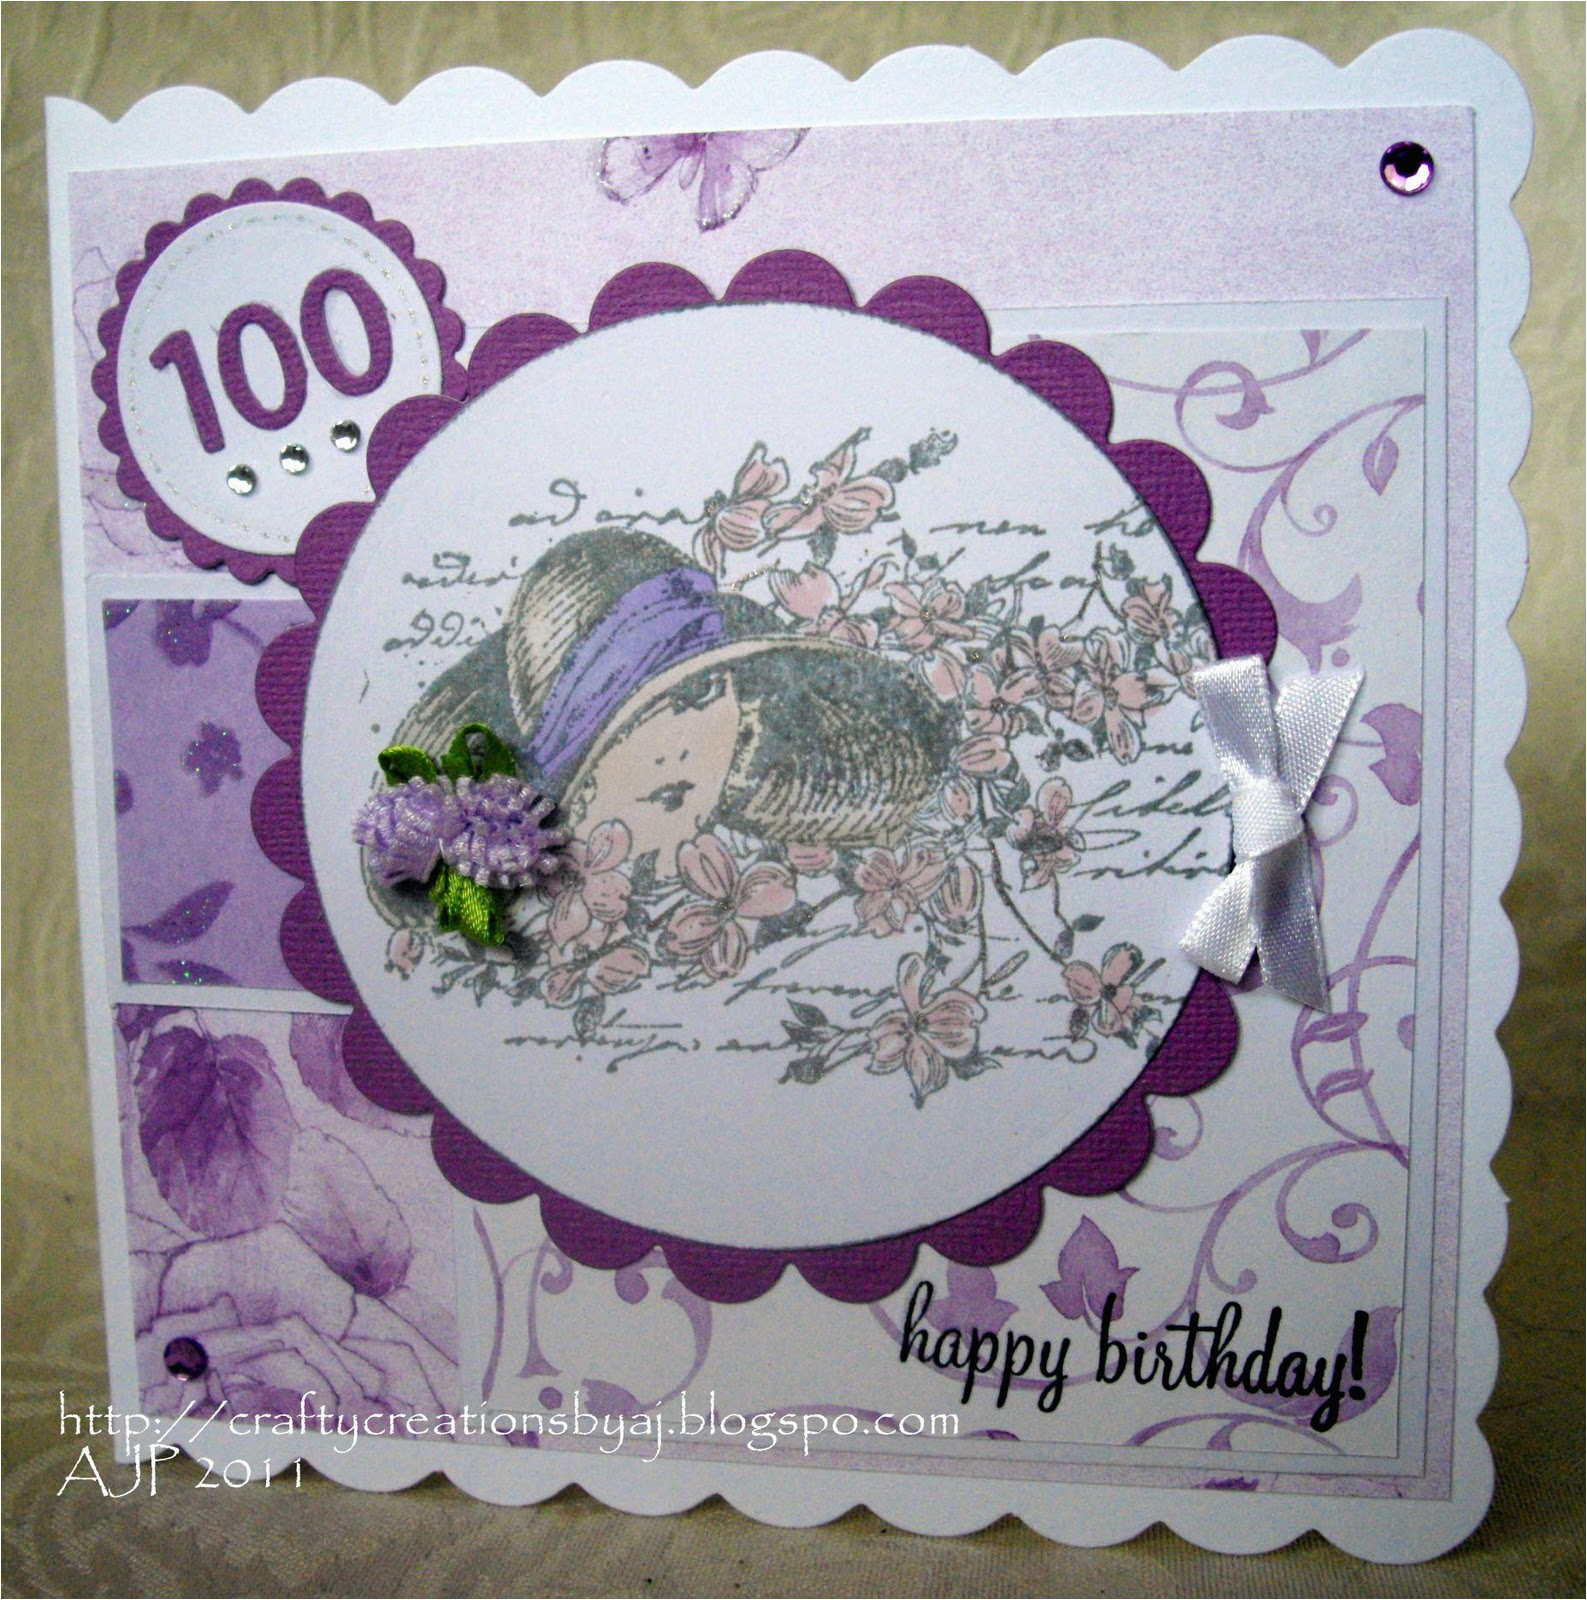 crafty creations by a j 100 years old birthday card